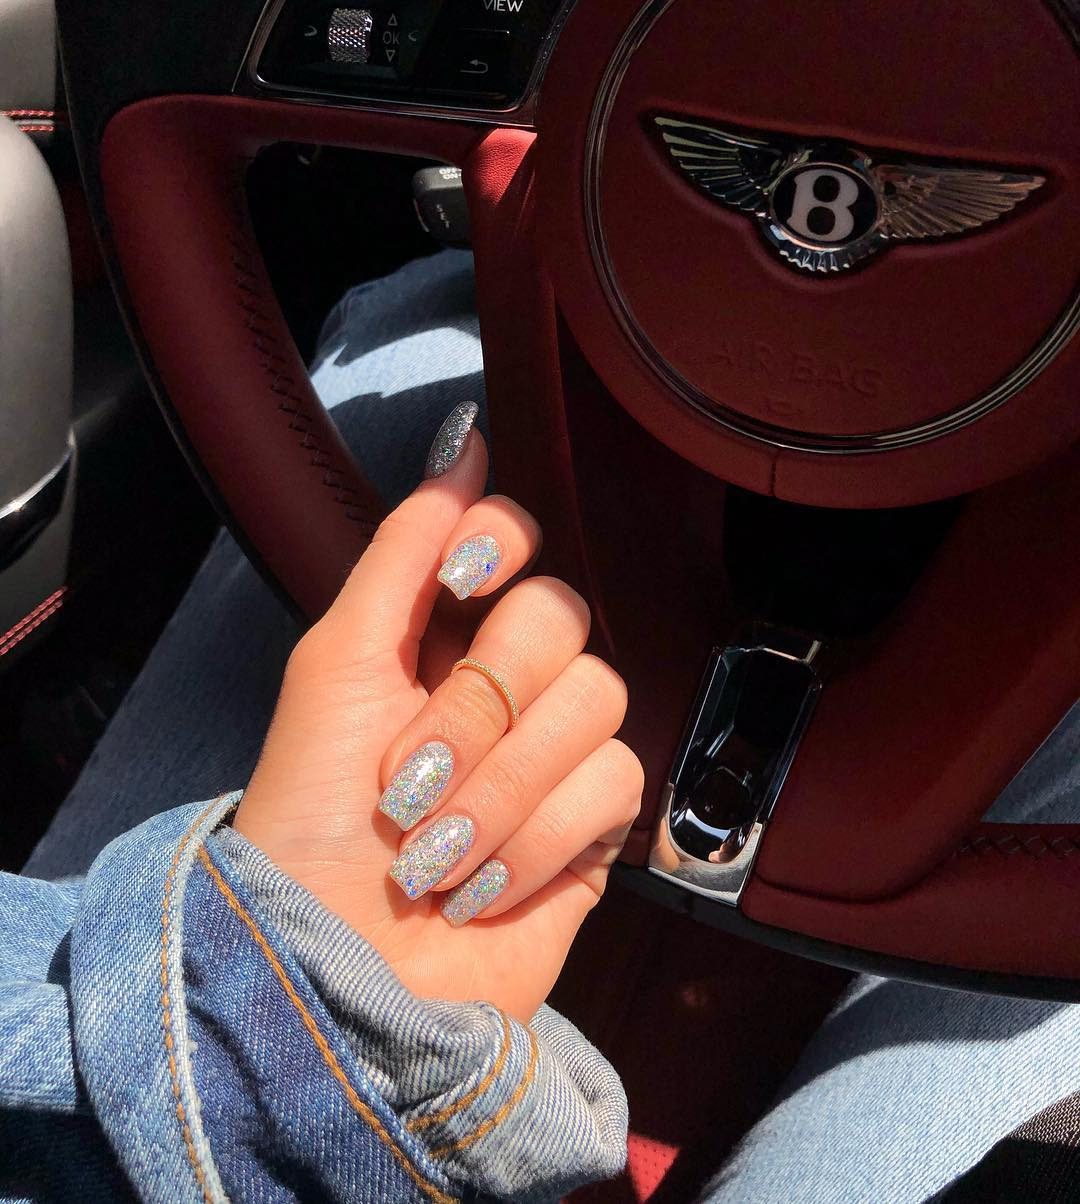 Kylie Jenner In Her Bentley with Her Nails Bling